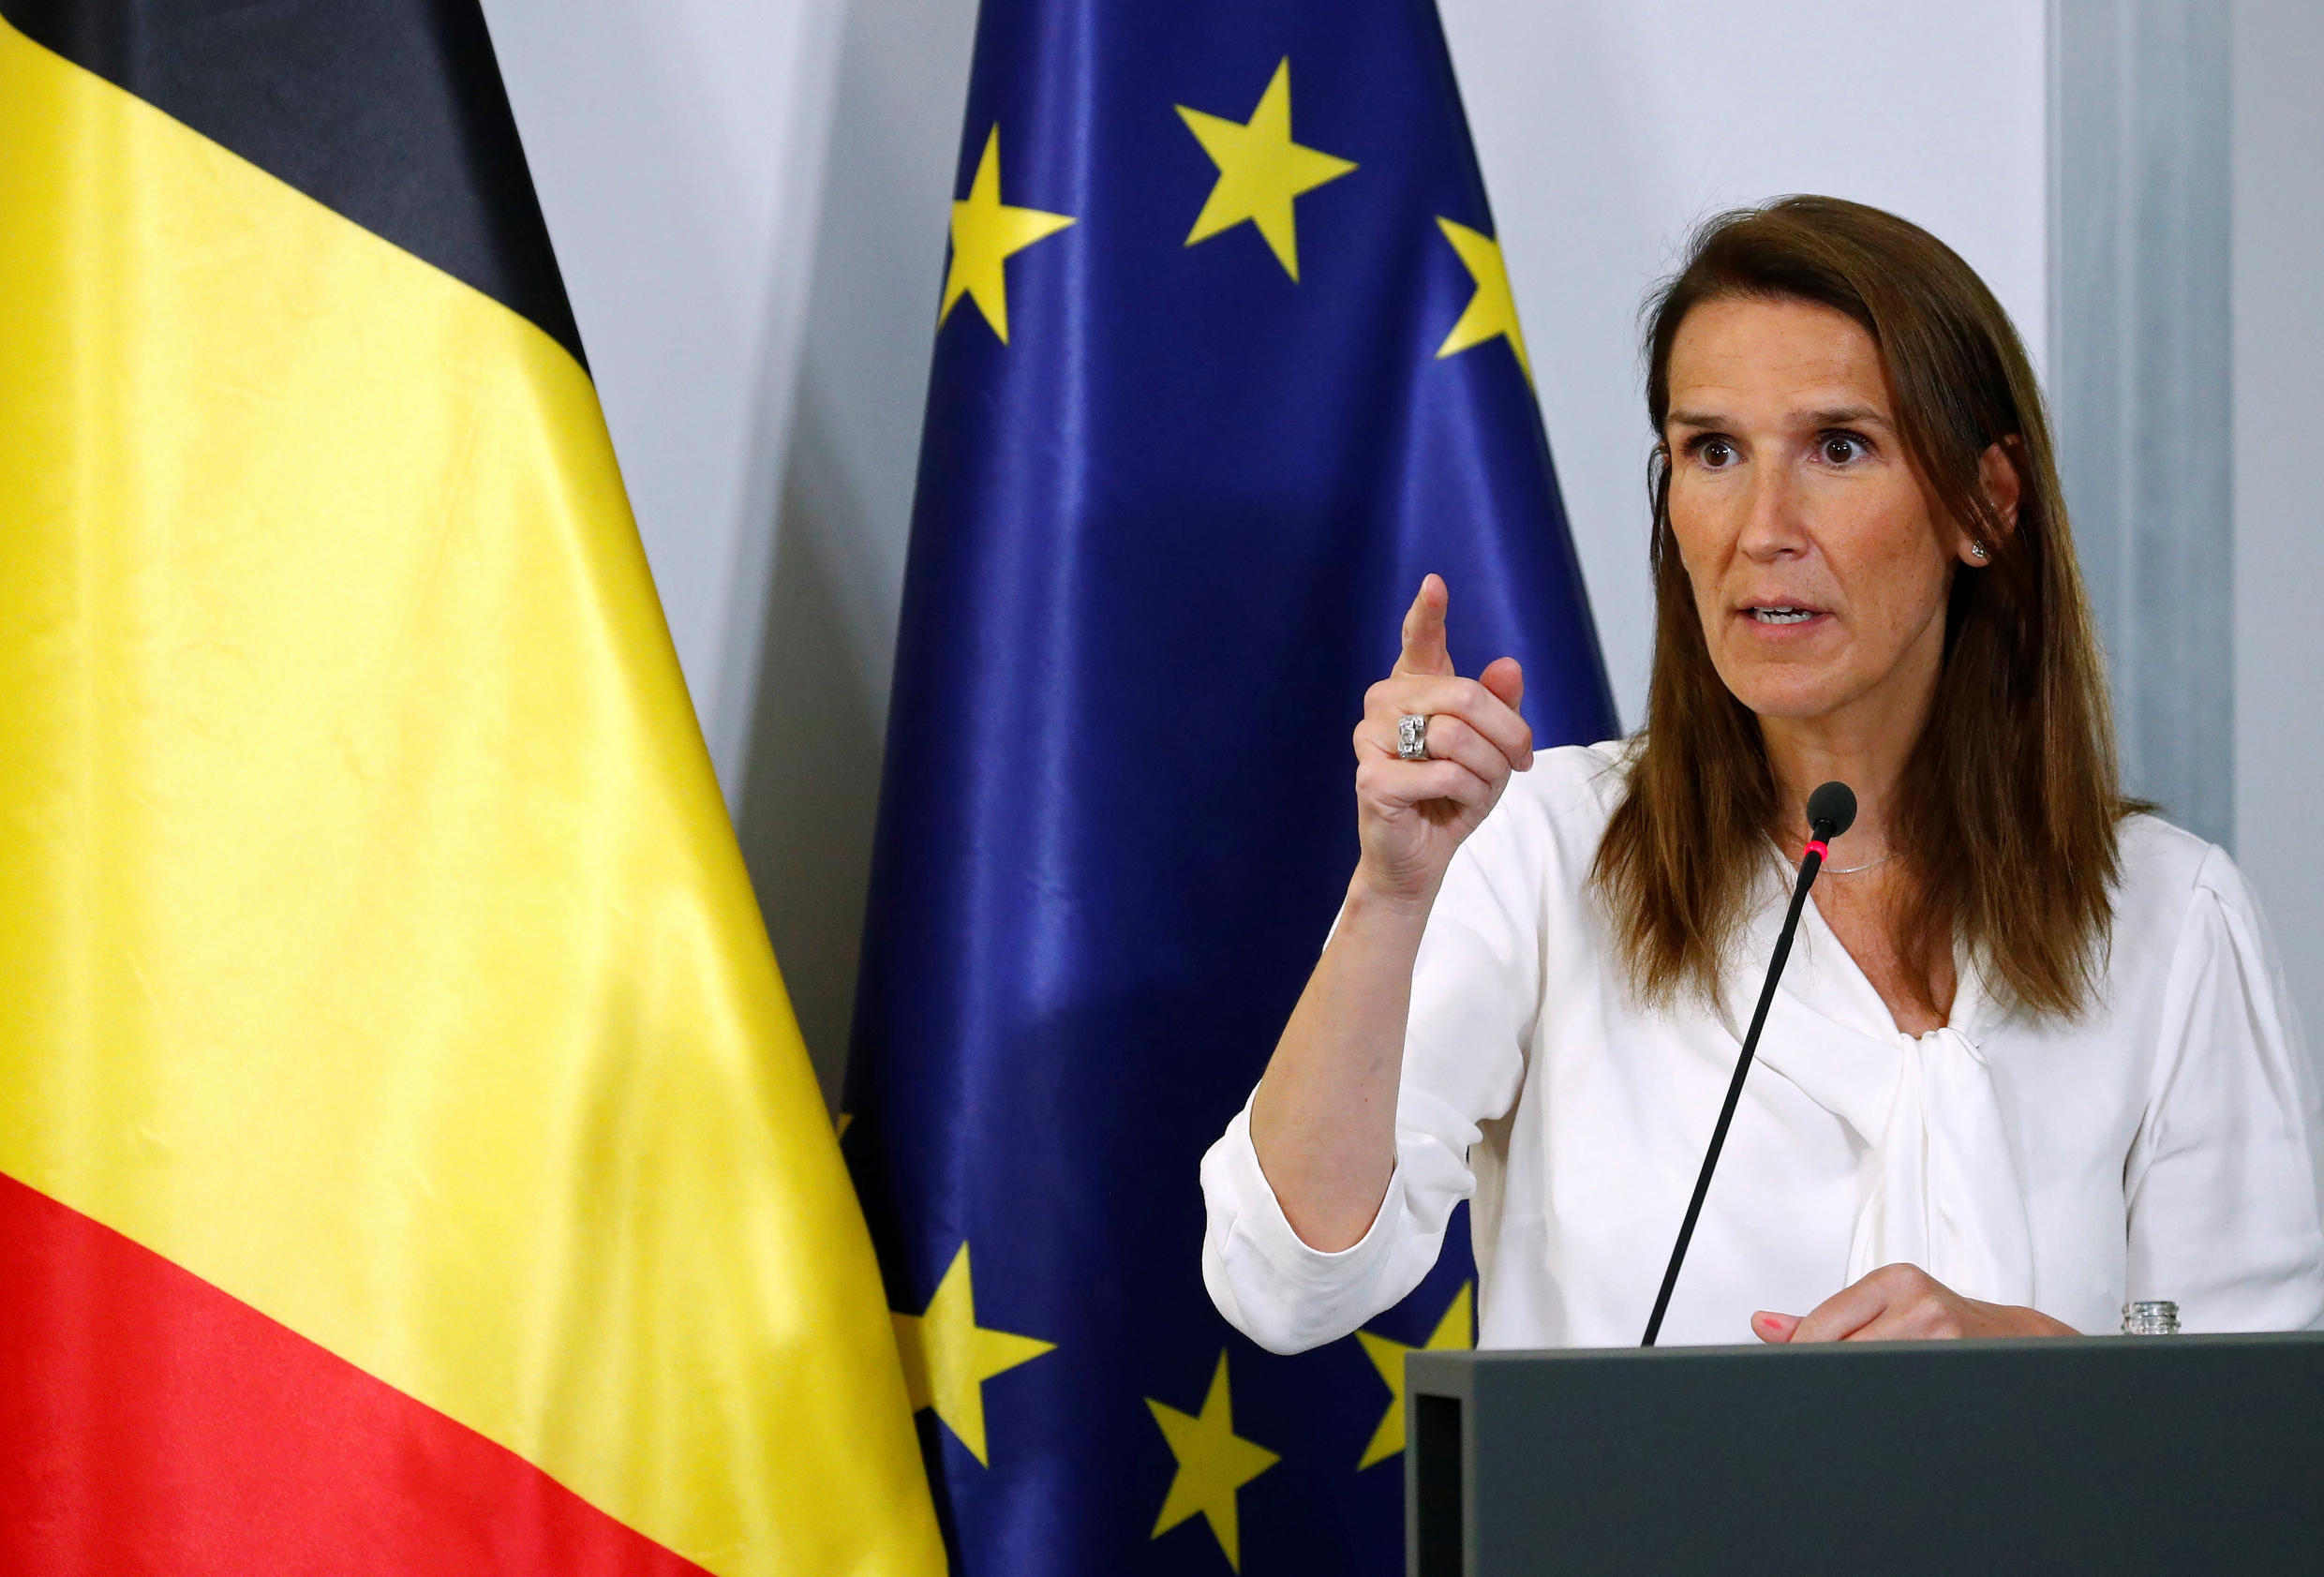 Belgium's Prime Minister Sophie Wilmes at a news conference in Brussels July 27, 2020.